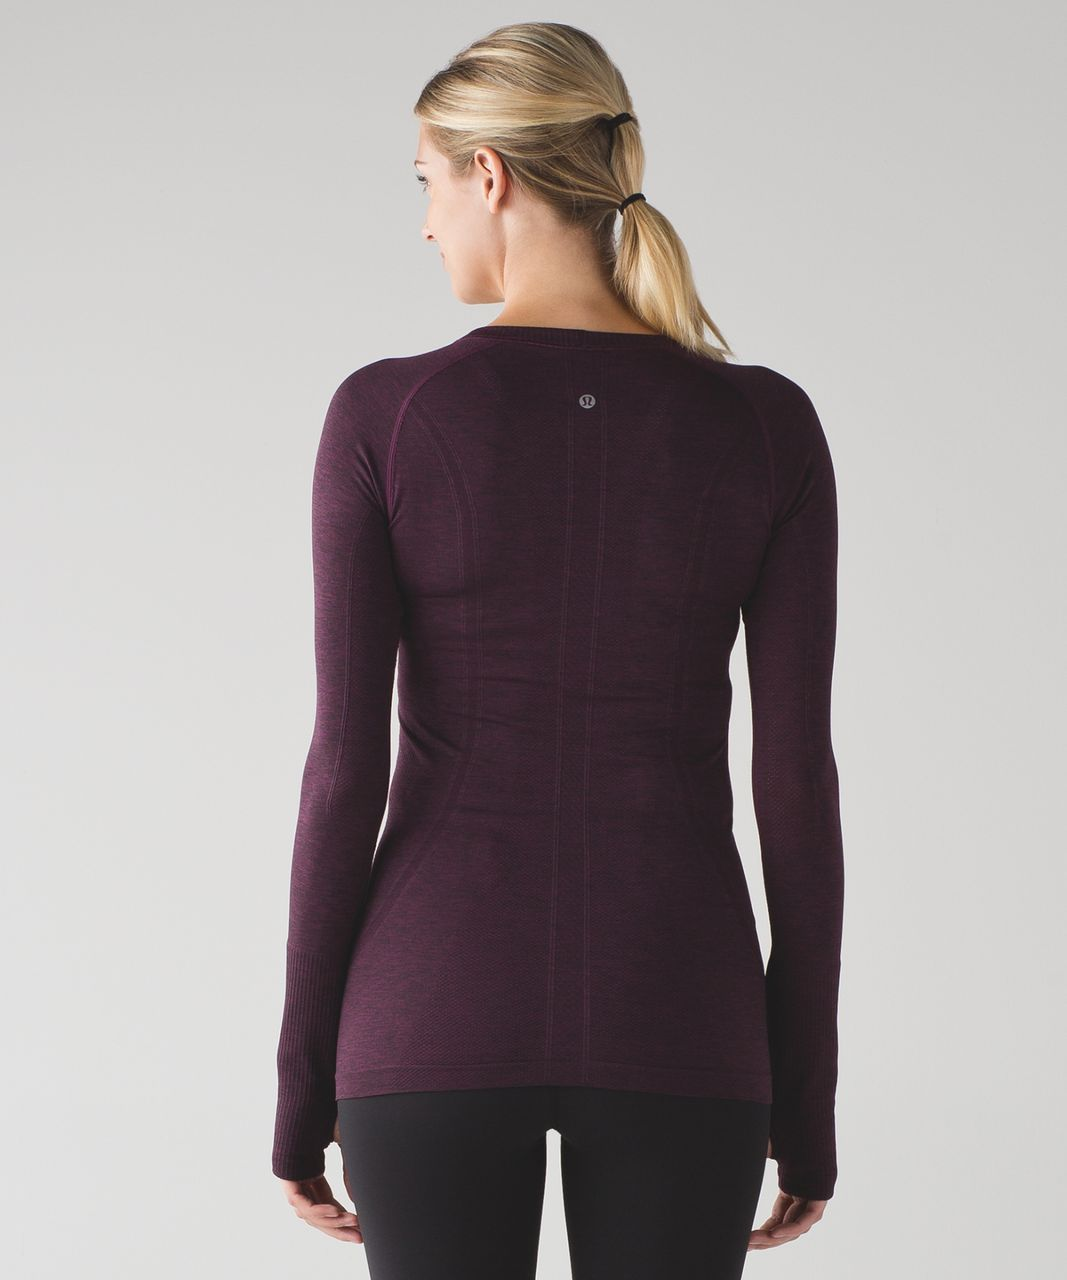 Lululemon Swiftly Tech Long Sleeve Crew Plum Black